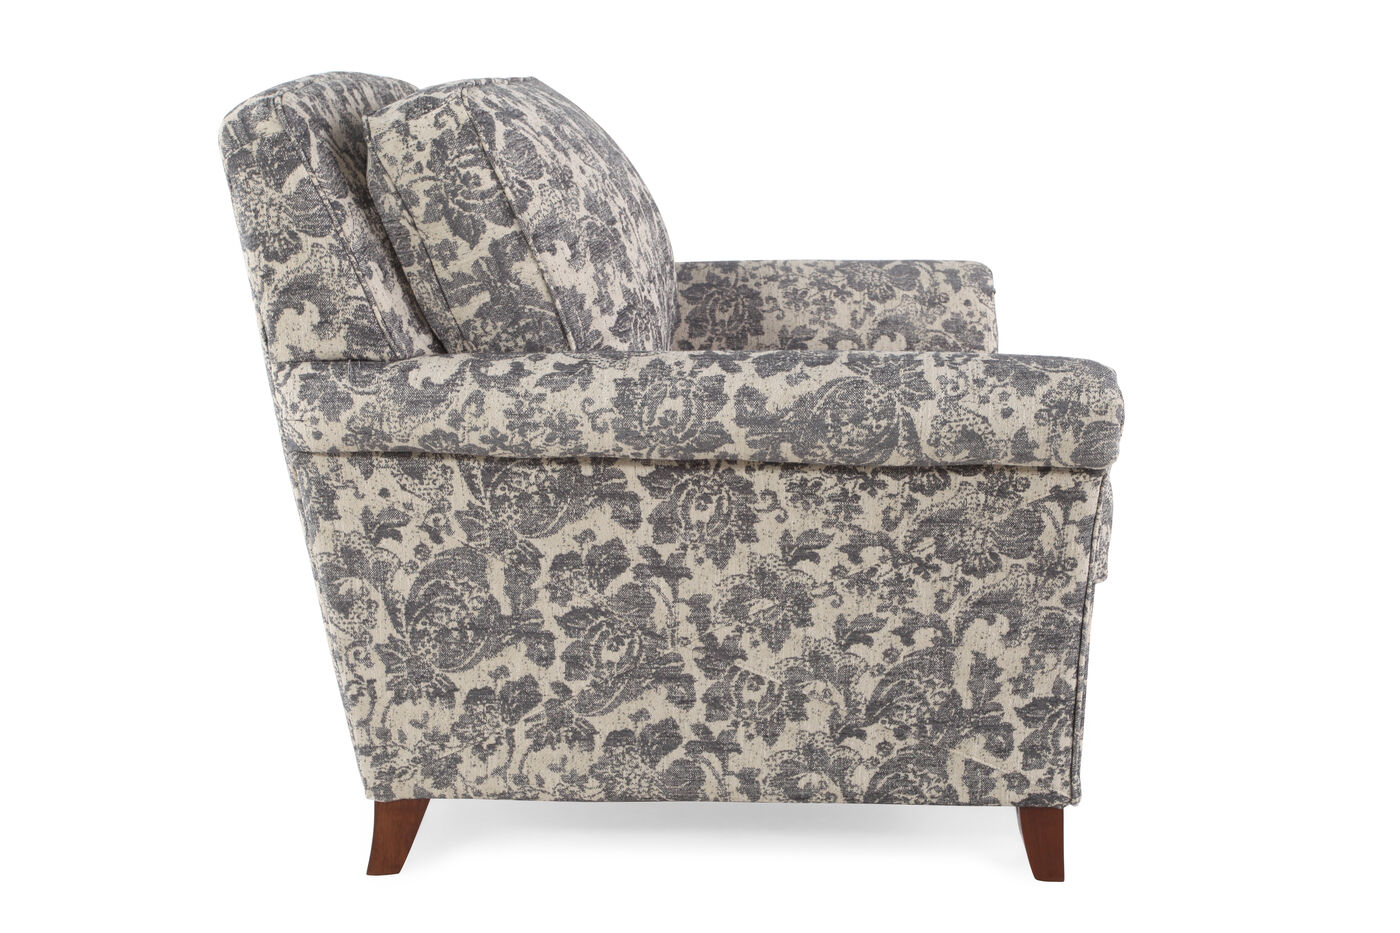 floral patterned traditional 39 chair in gray mathis brothers furniture. Black Bedroom Furniture Sets. Home Design Ideas